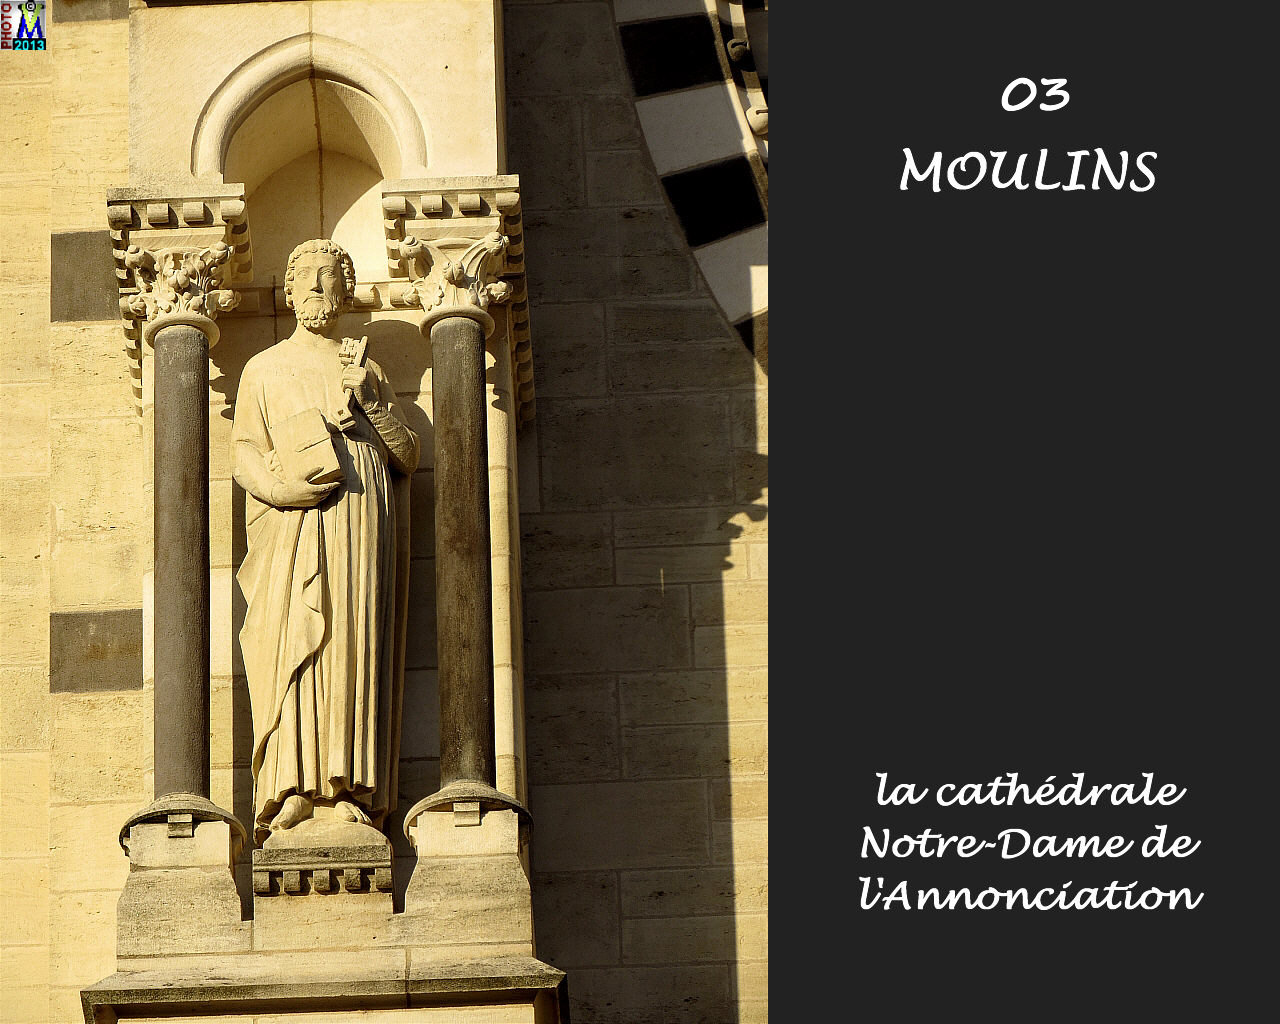 03MOULINS_cathedrale_124.jpg